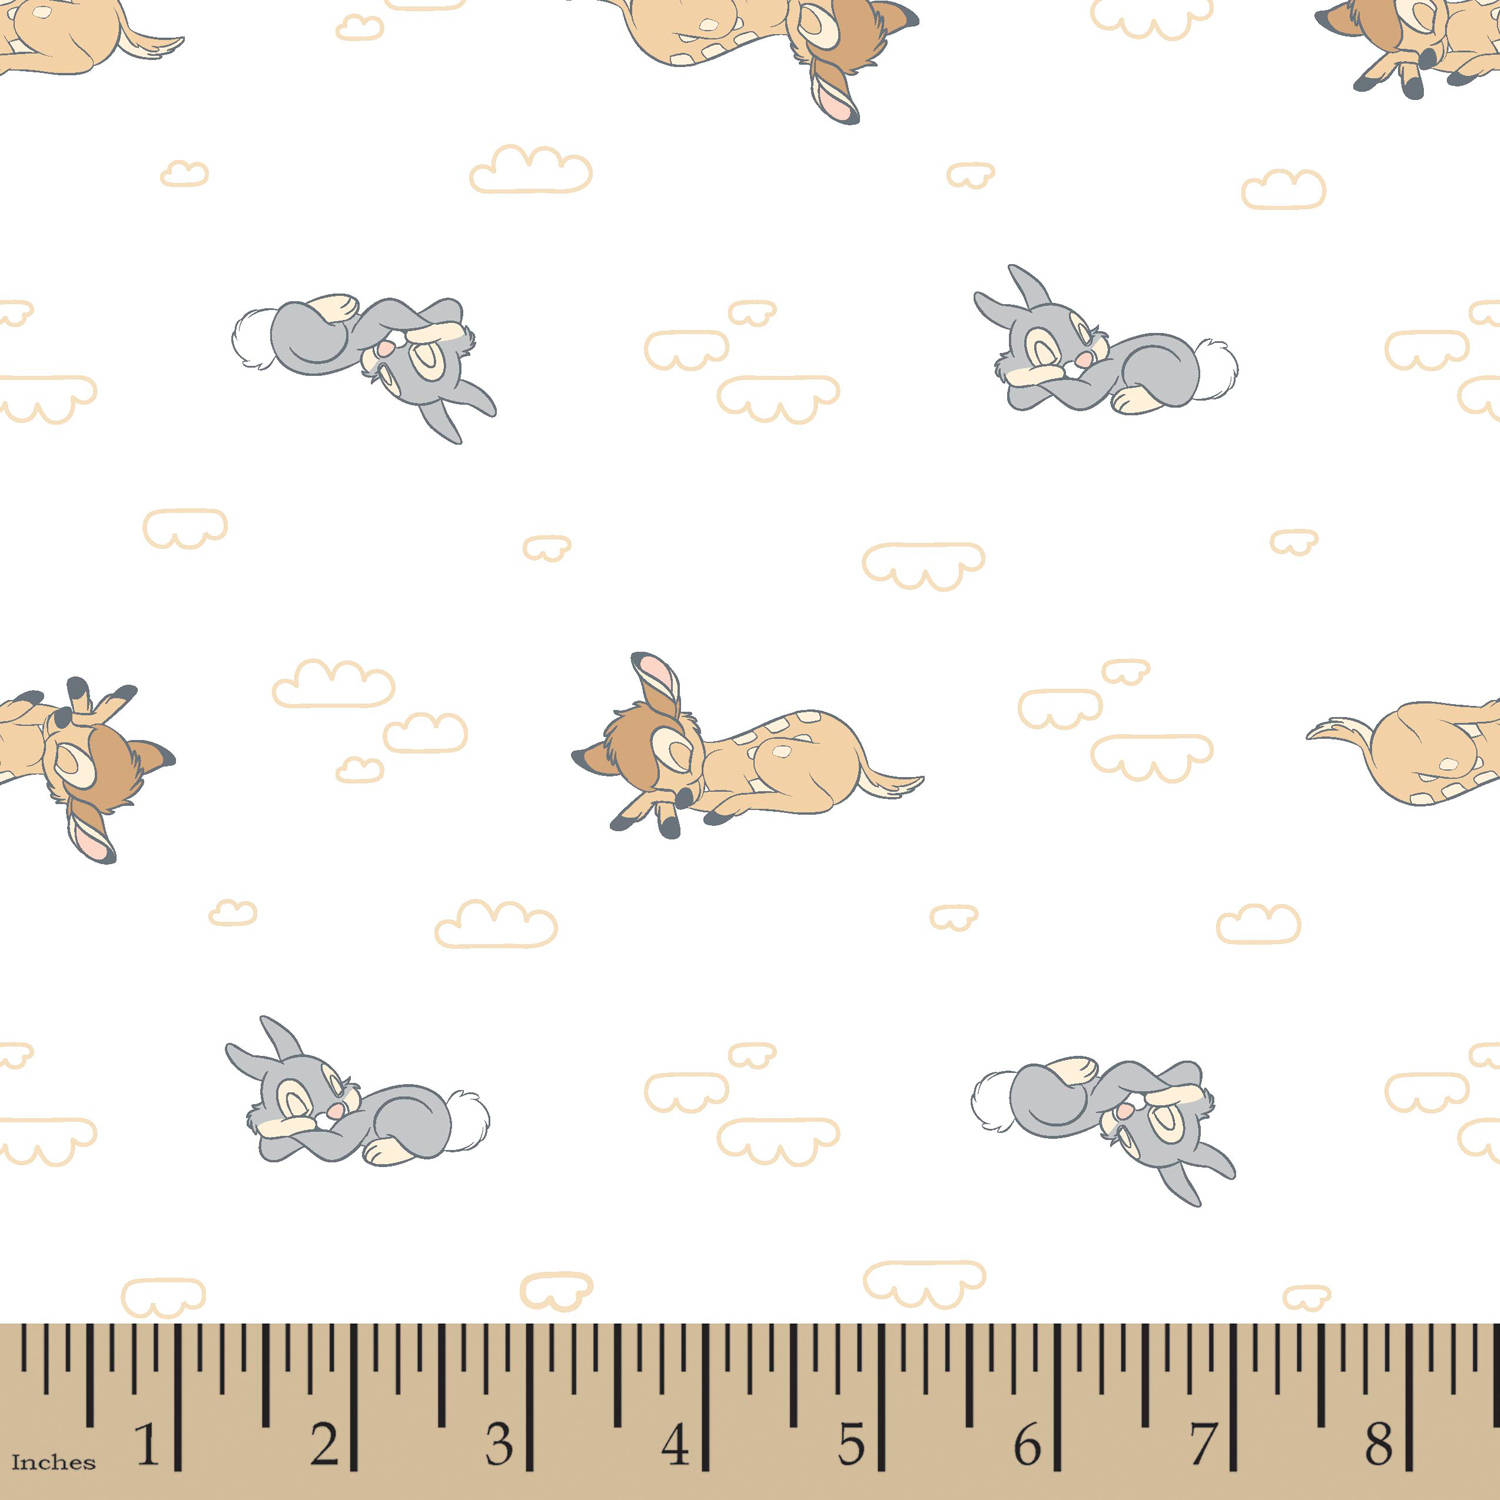 "Disney Bambi Nursery Sweet Dreams Bambi, Flannel, White, 42/43"" Width, Fabric by the Yard"